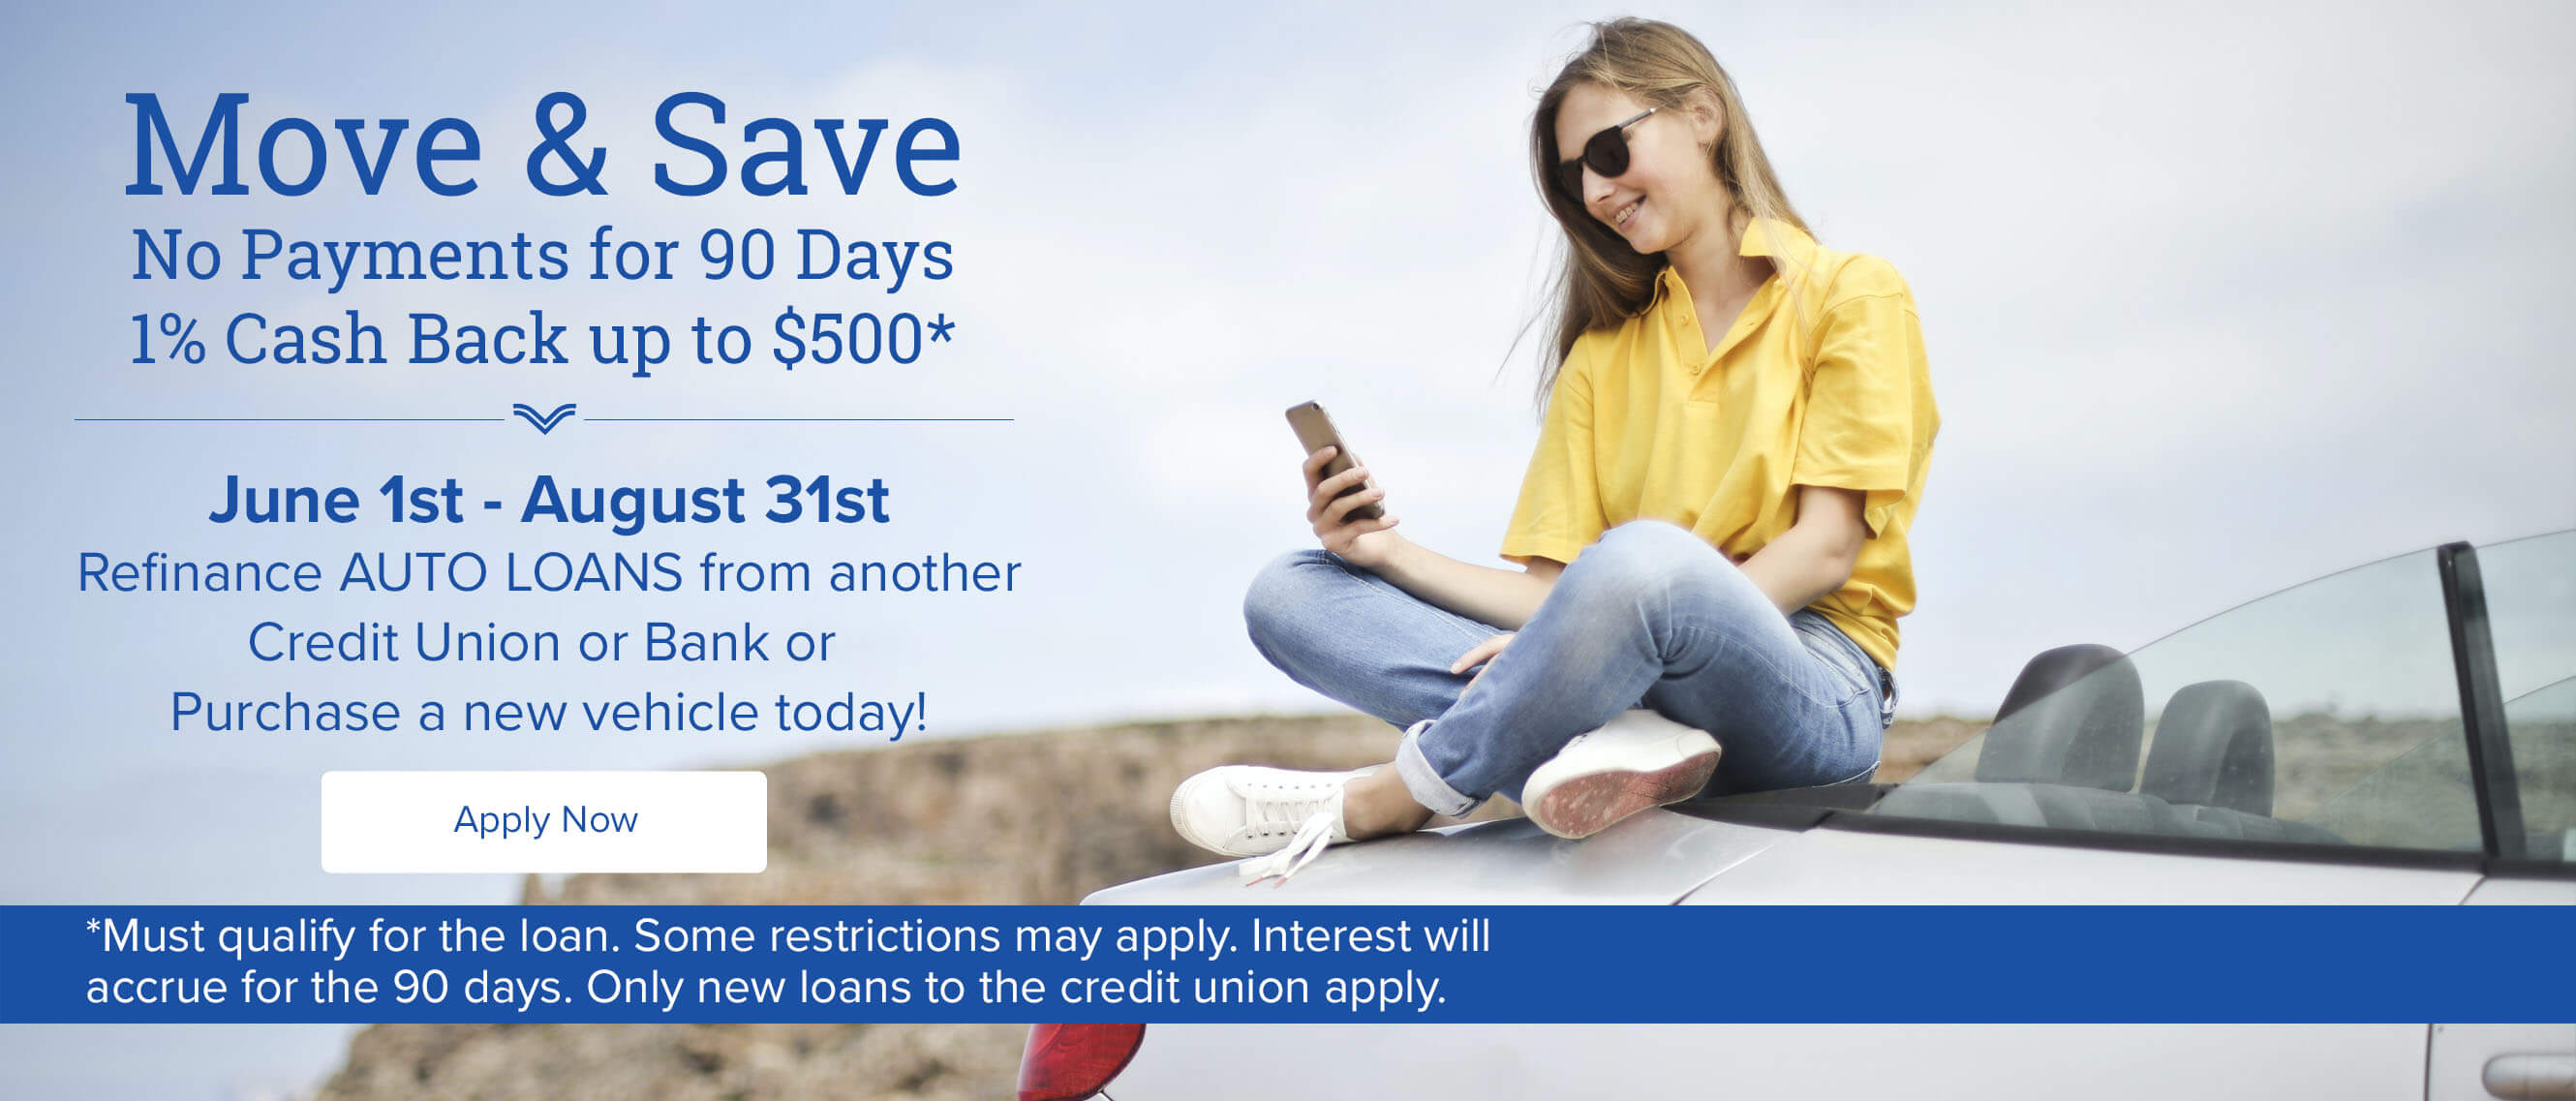 Move & Save No Payments for 90 Days 1% Cash Back up to $500*